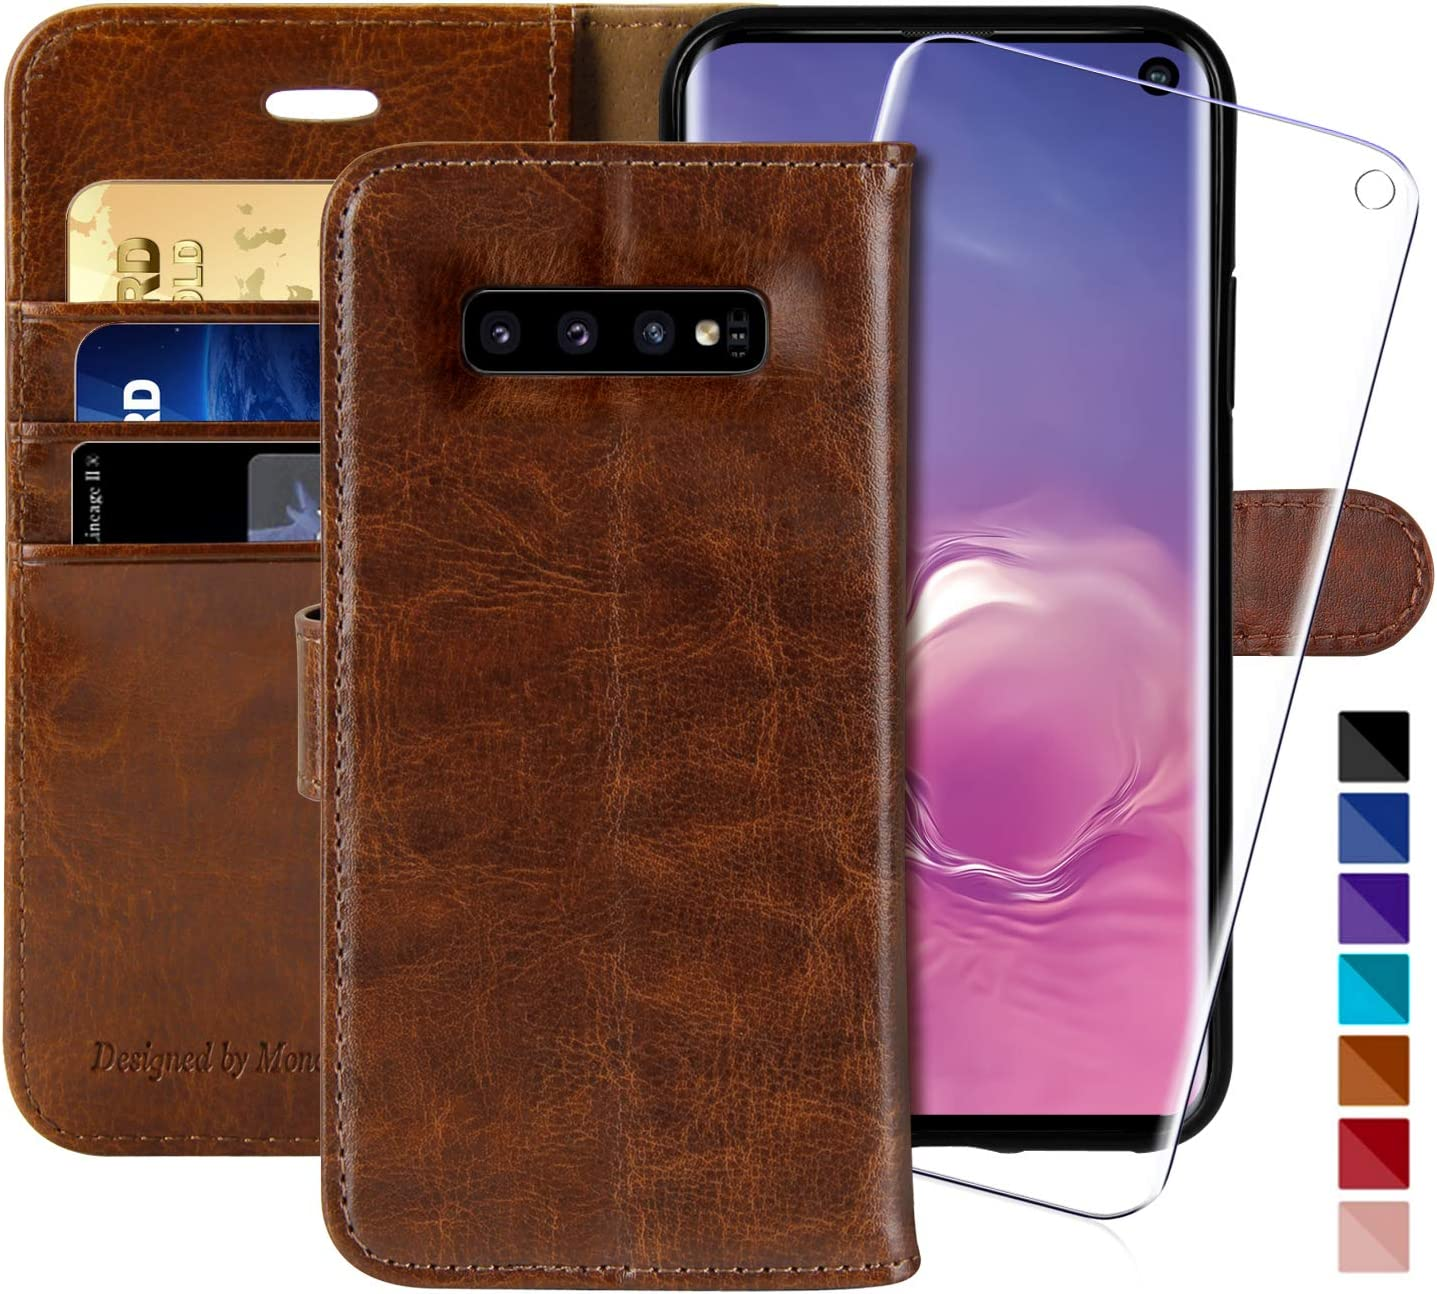 Galaxy S10 Wallet Case, 6.1 inch,MONASAY [Included Screen Protector] Flip Folio Leather Cell Phone Cover with Credit Card Holder for Samsung Galaxy S10